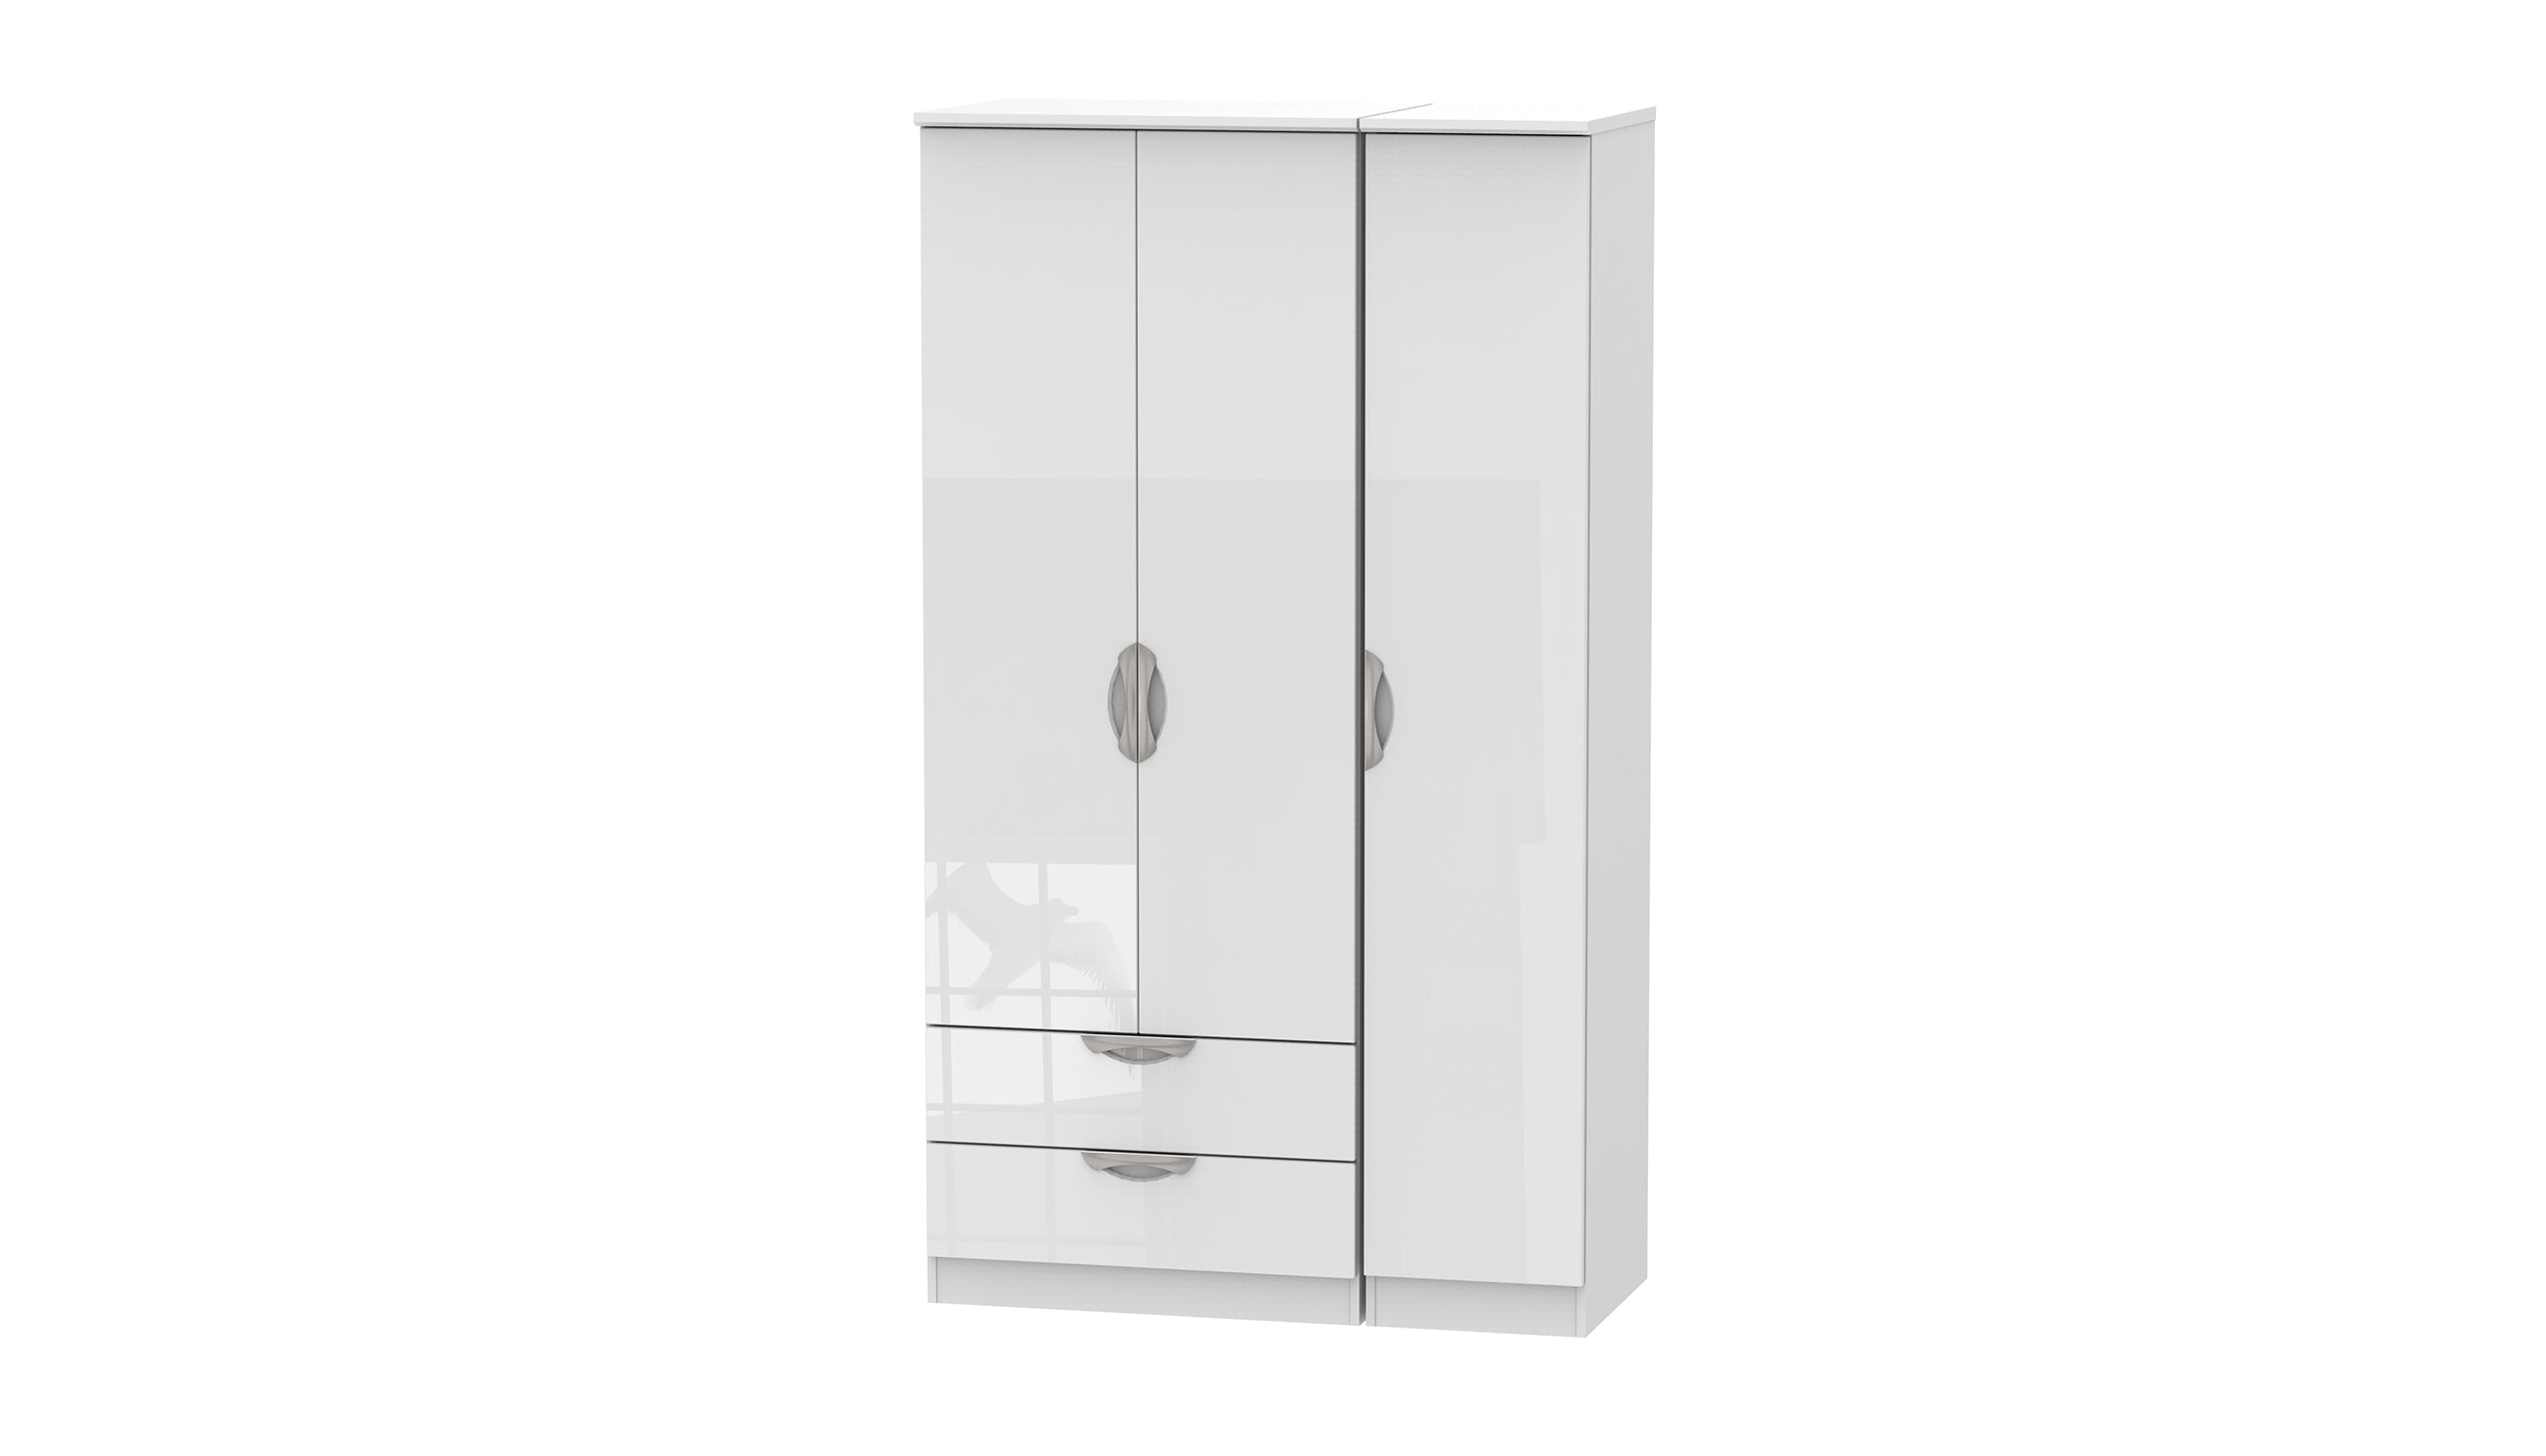 Moda Tall 3 Door 2 Drawer Wardrobe - AHF Furniture & Carpets